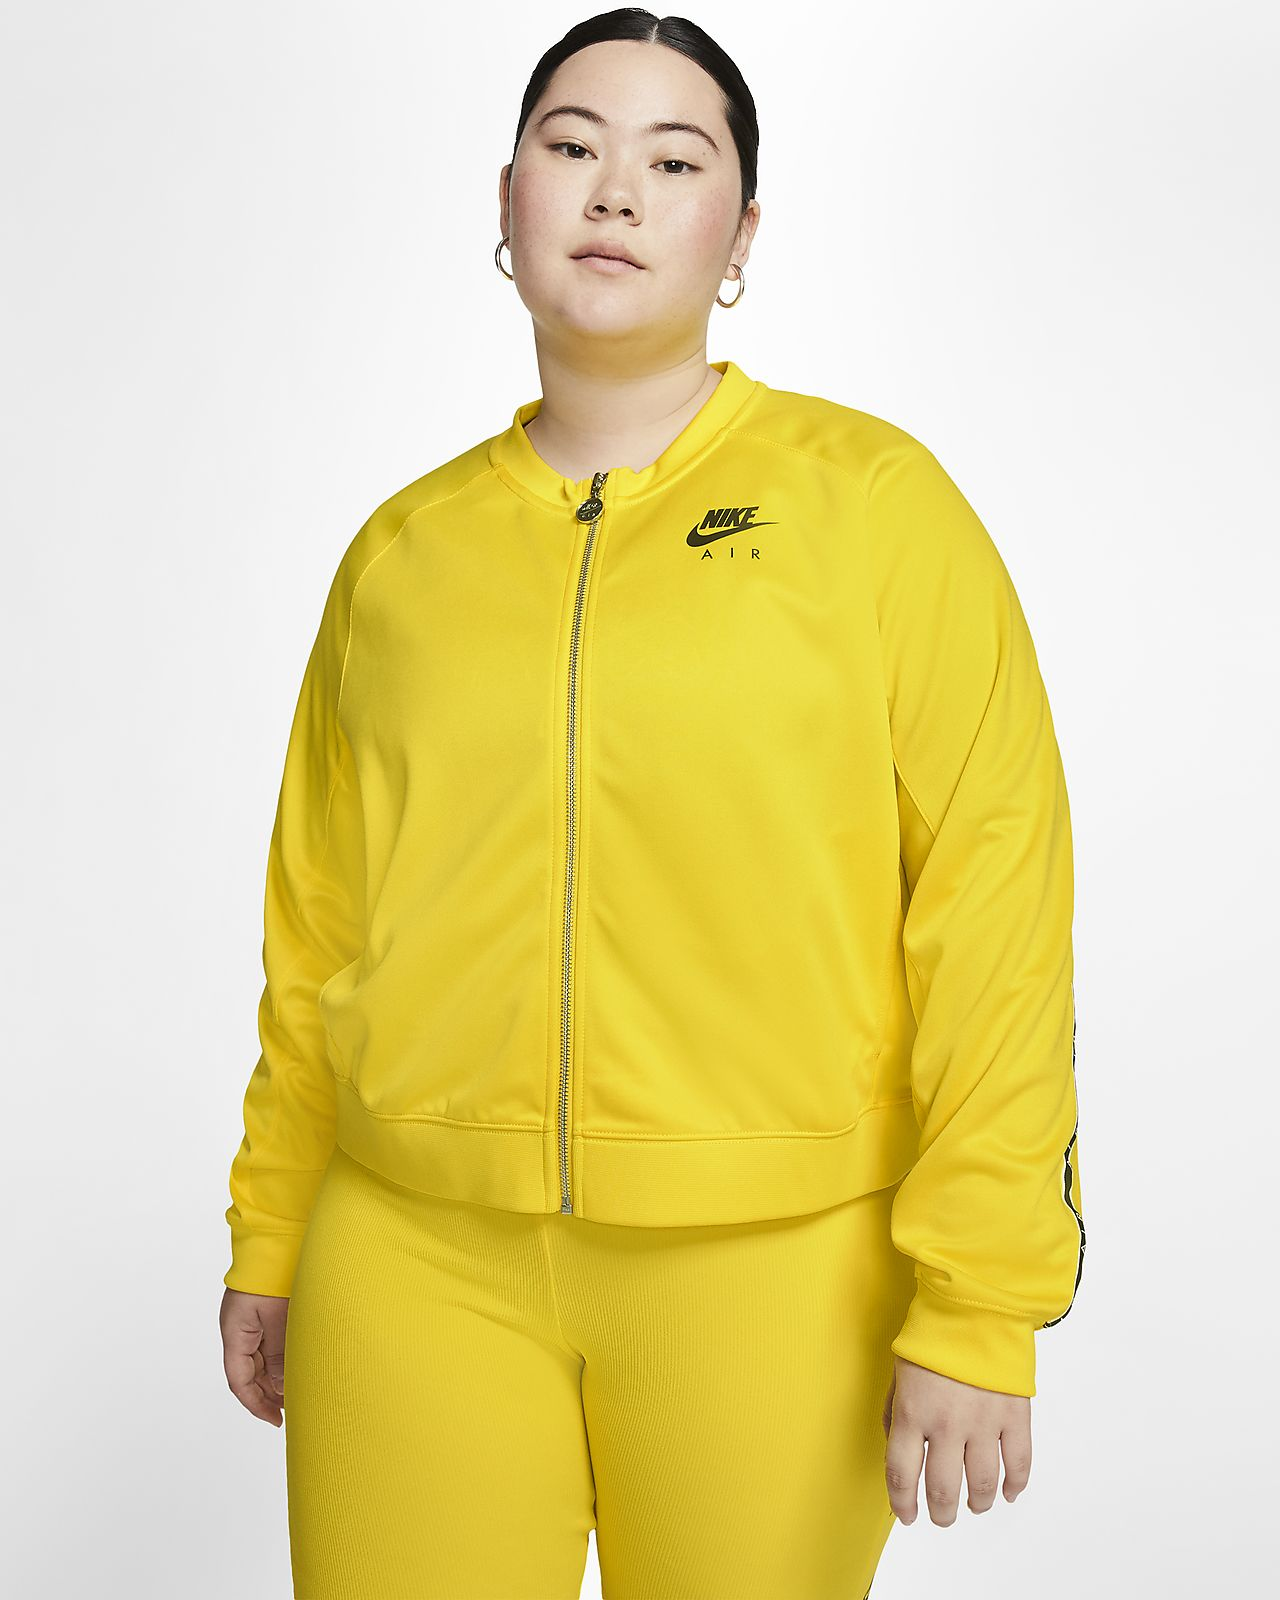 Nike Air Women's Jacket (Plus Size)